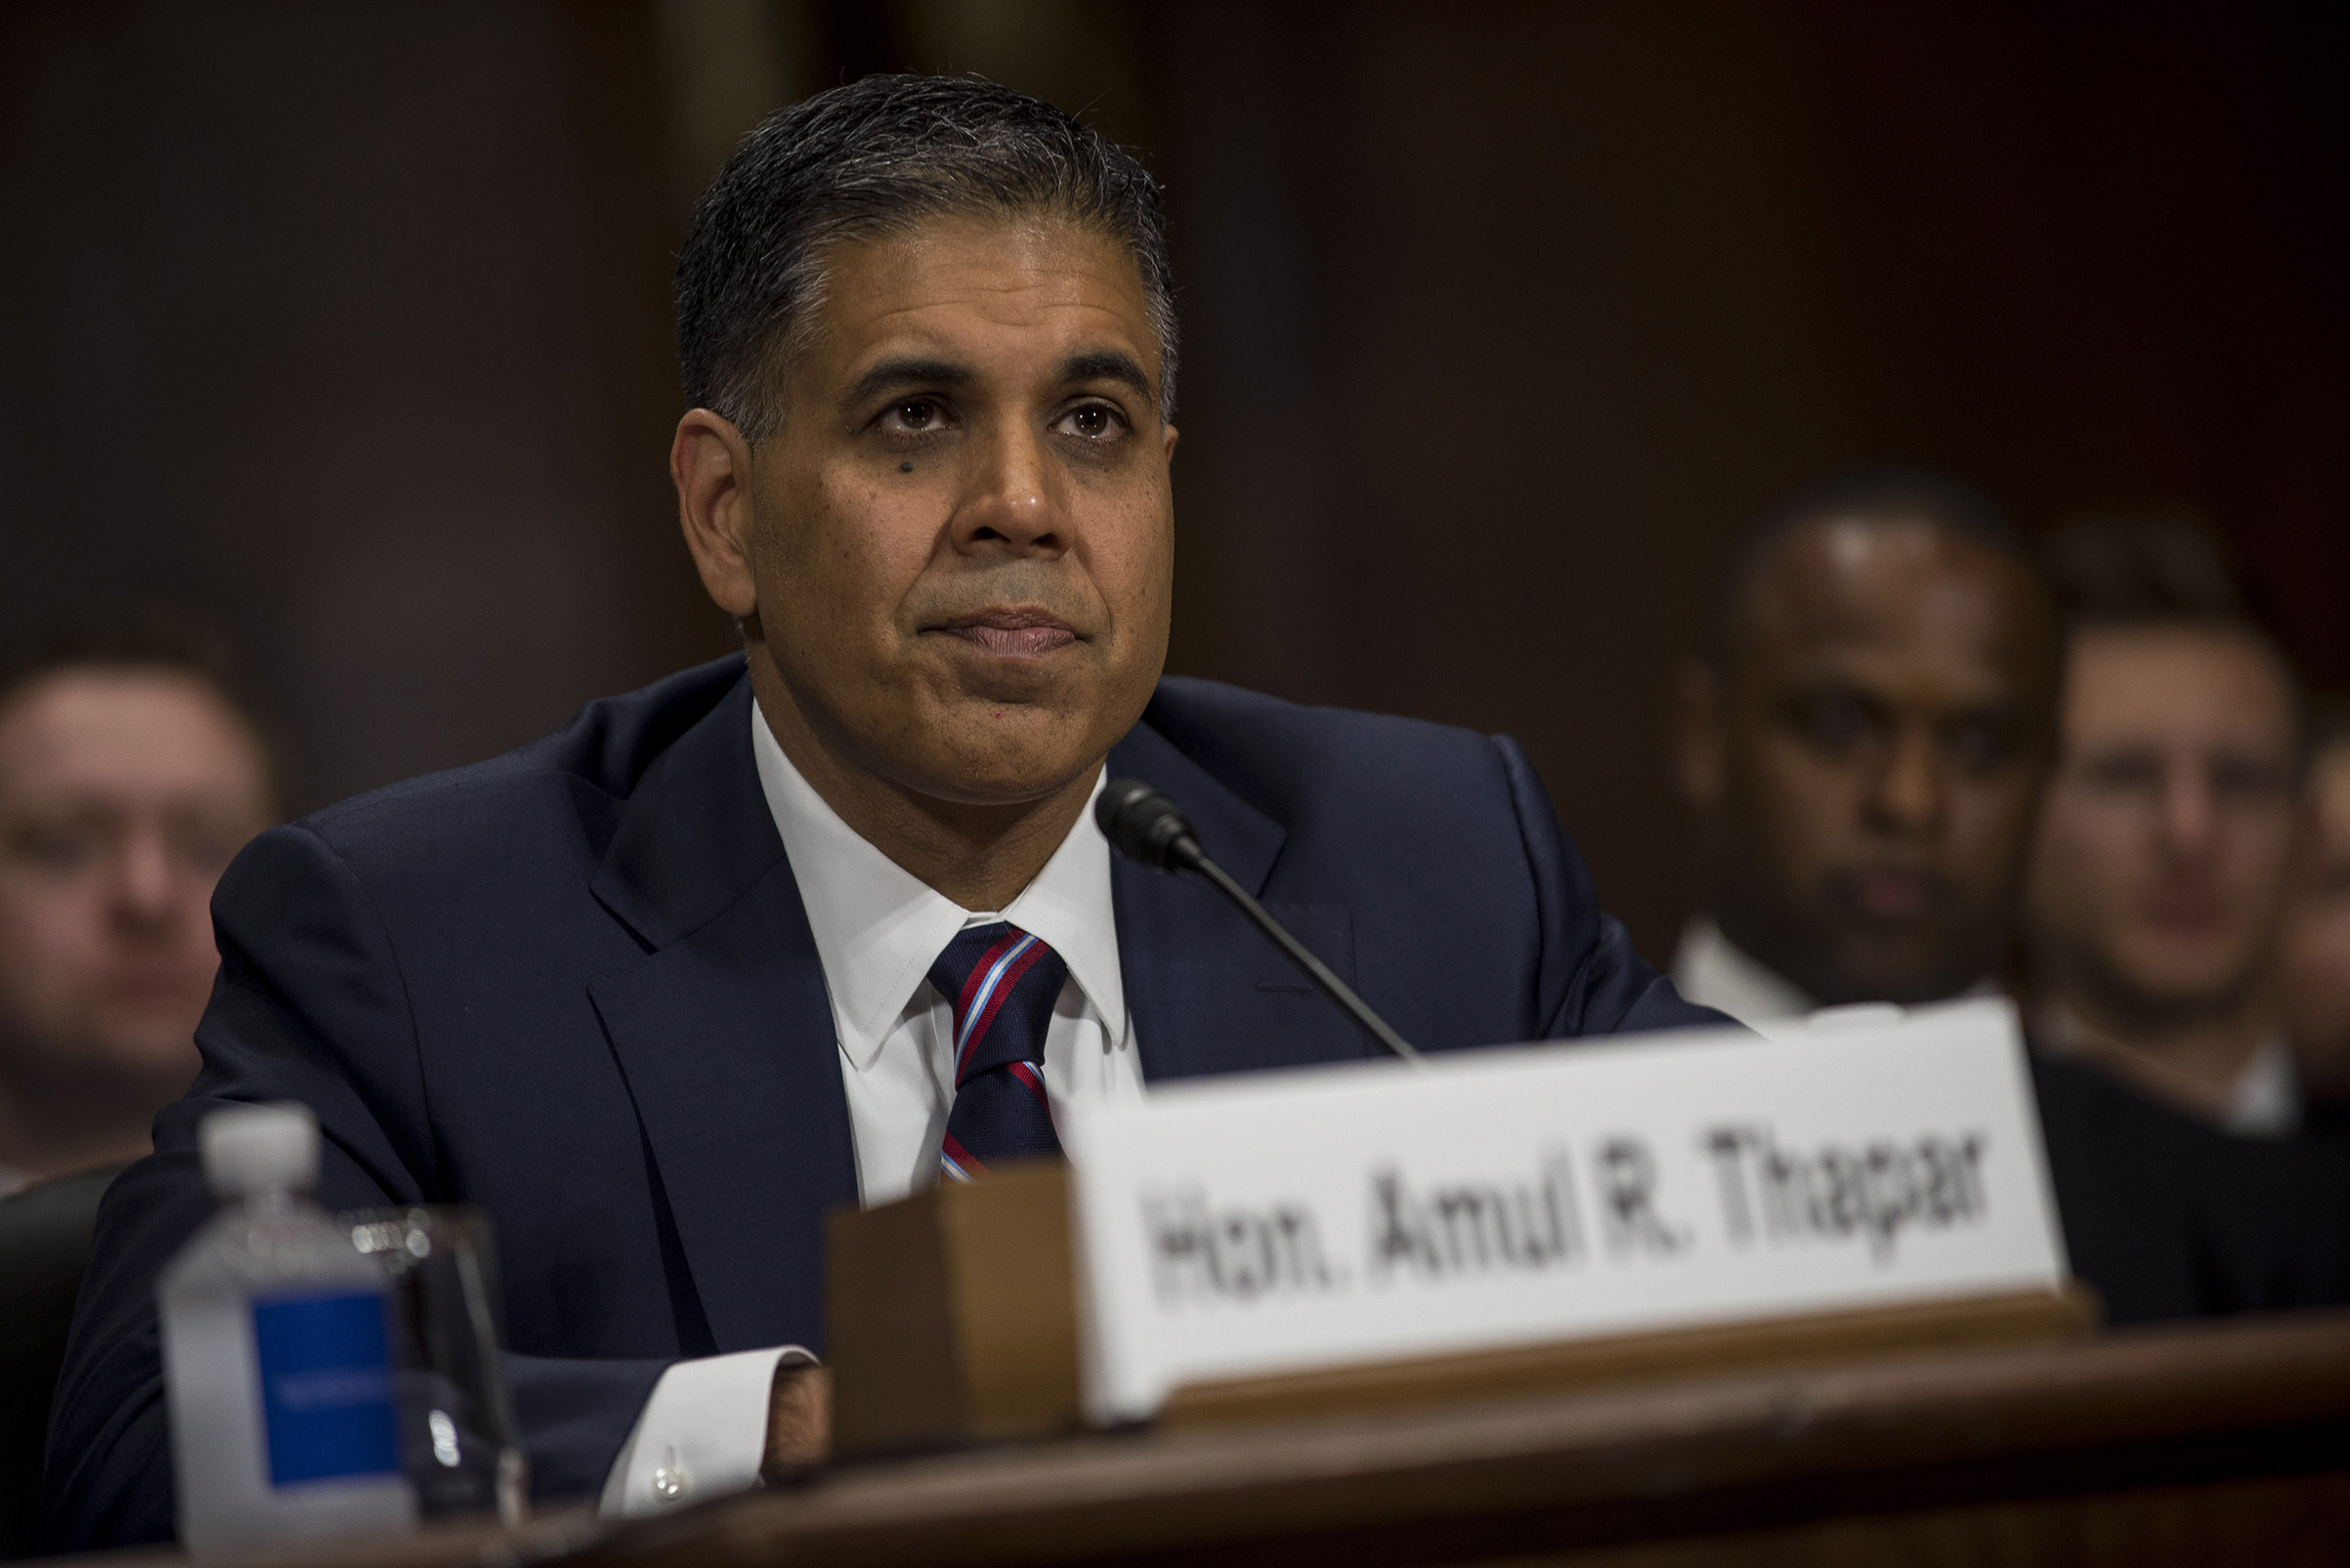 Amul Thapar, a federal judge in Kentucky nominated for a seat on the U.S. Court of Appeals for the Sixth Circuit, during a Senate Judiciary confirmation hearing on Capitol Hill in Washington, April 26, 2017